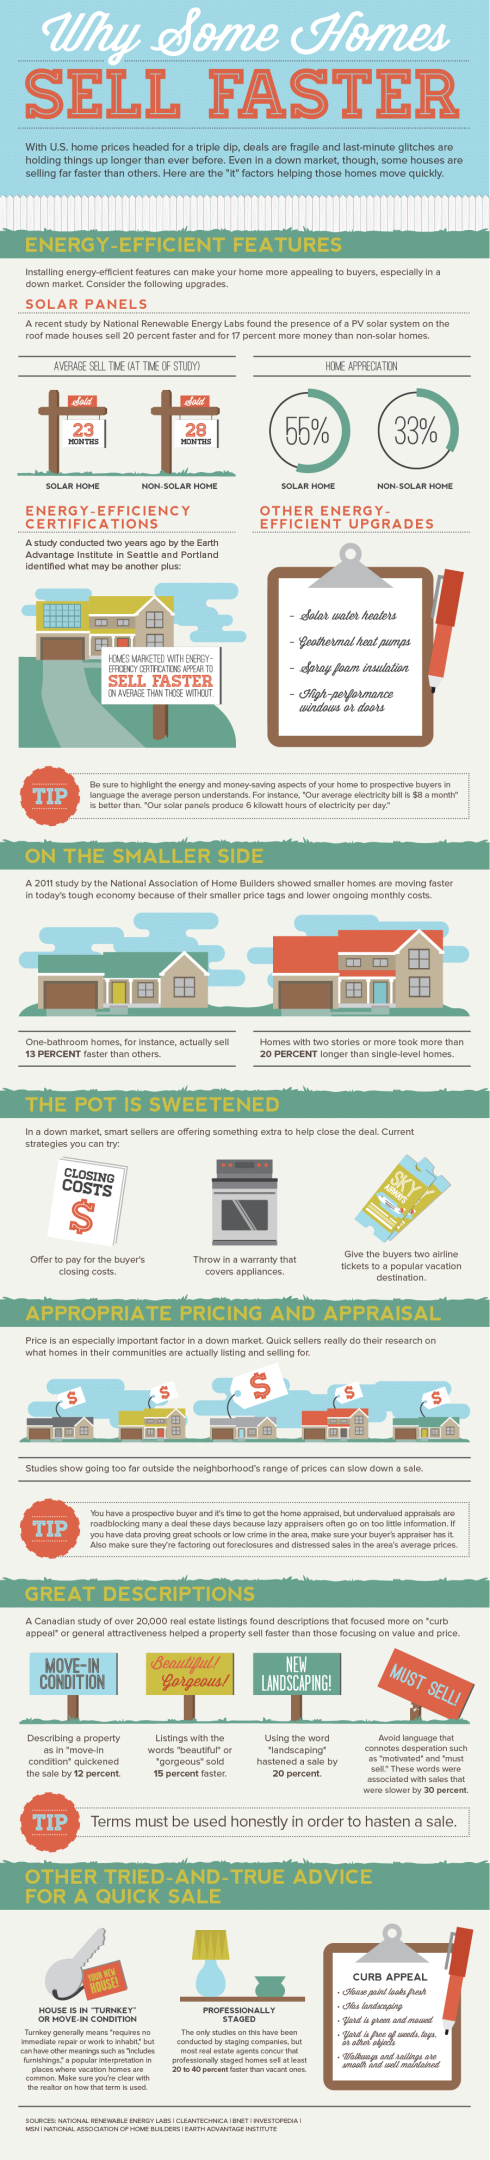 infographic-why-some-homes-sell-faster